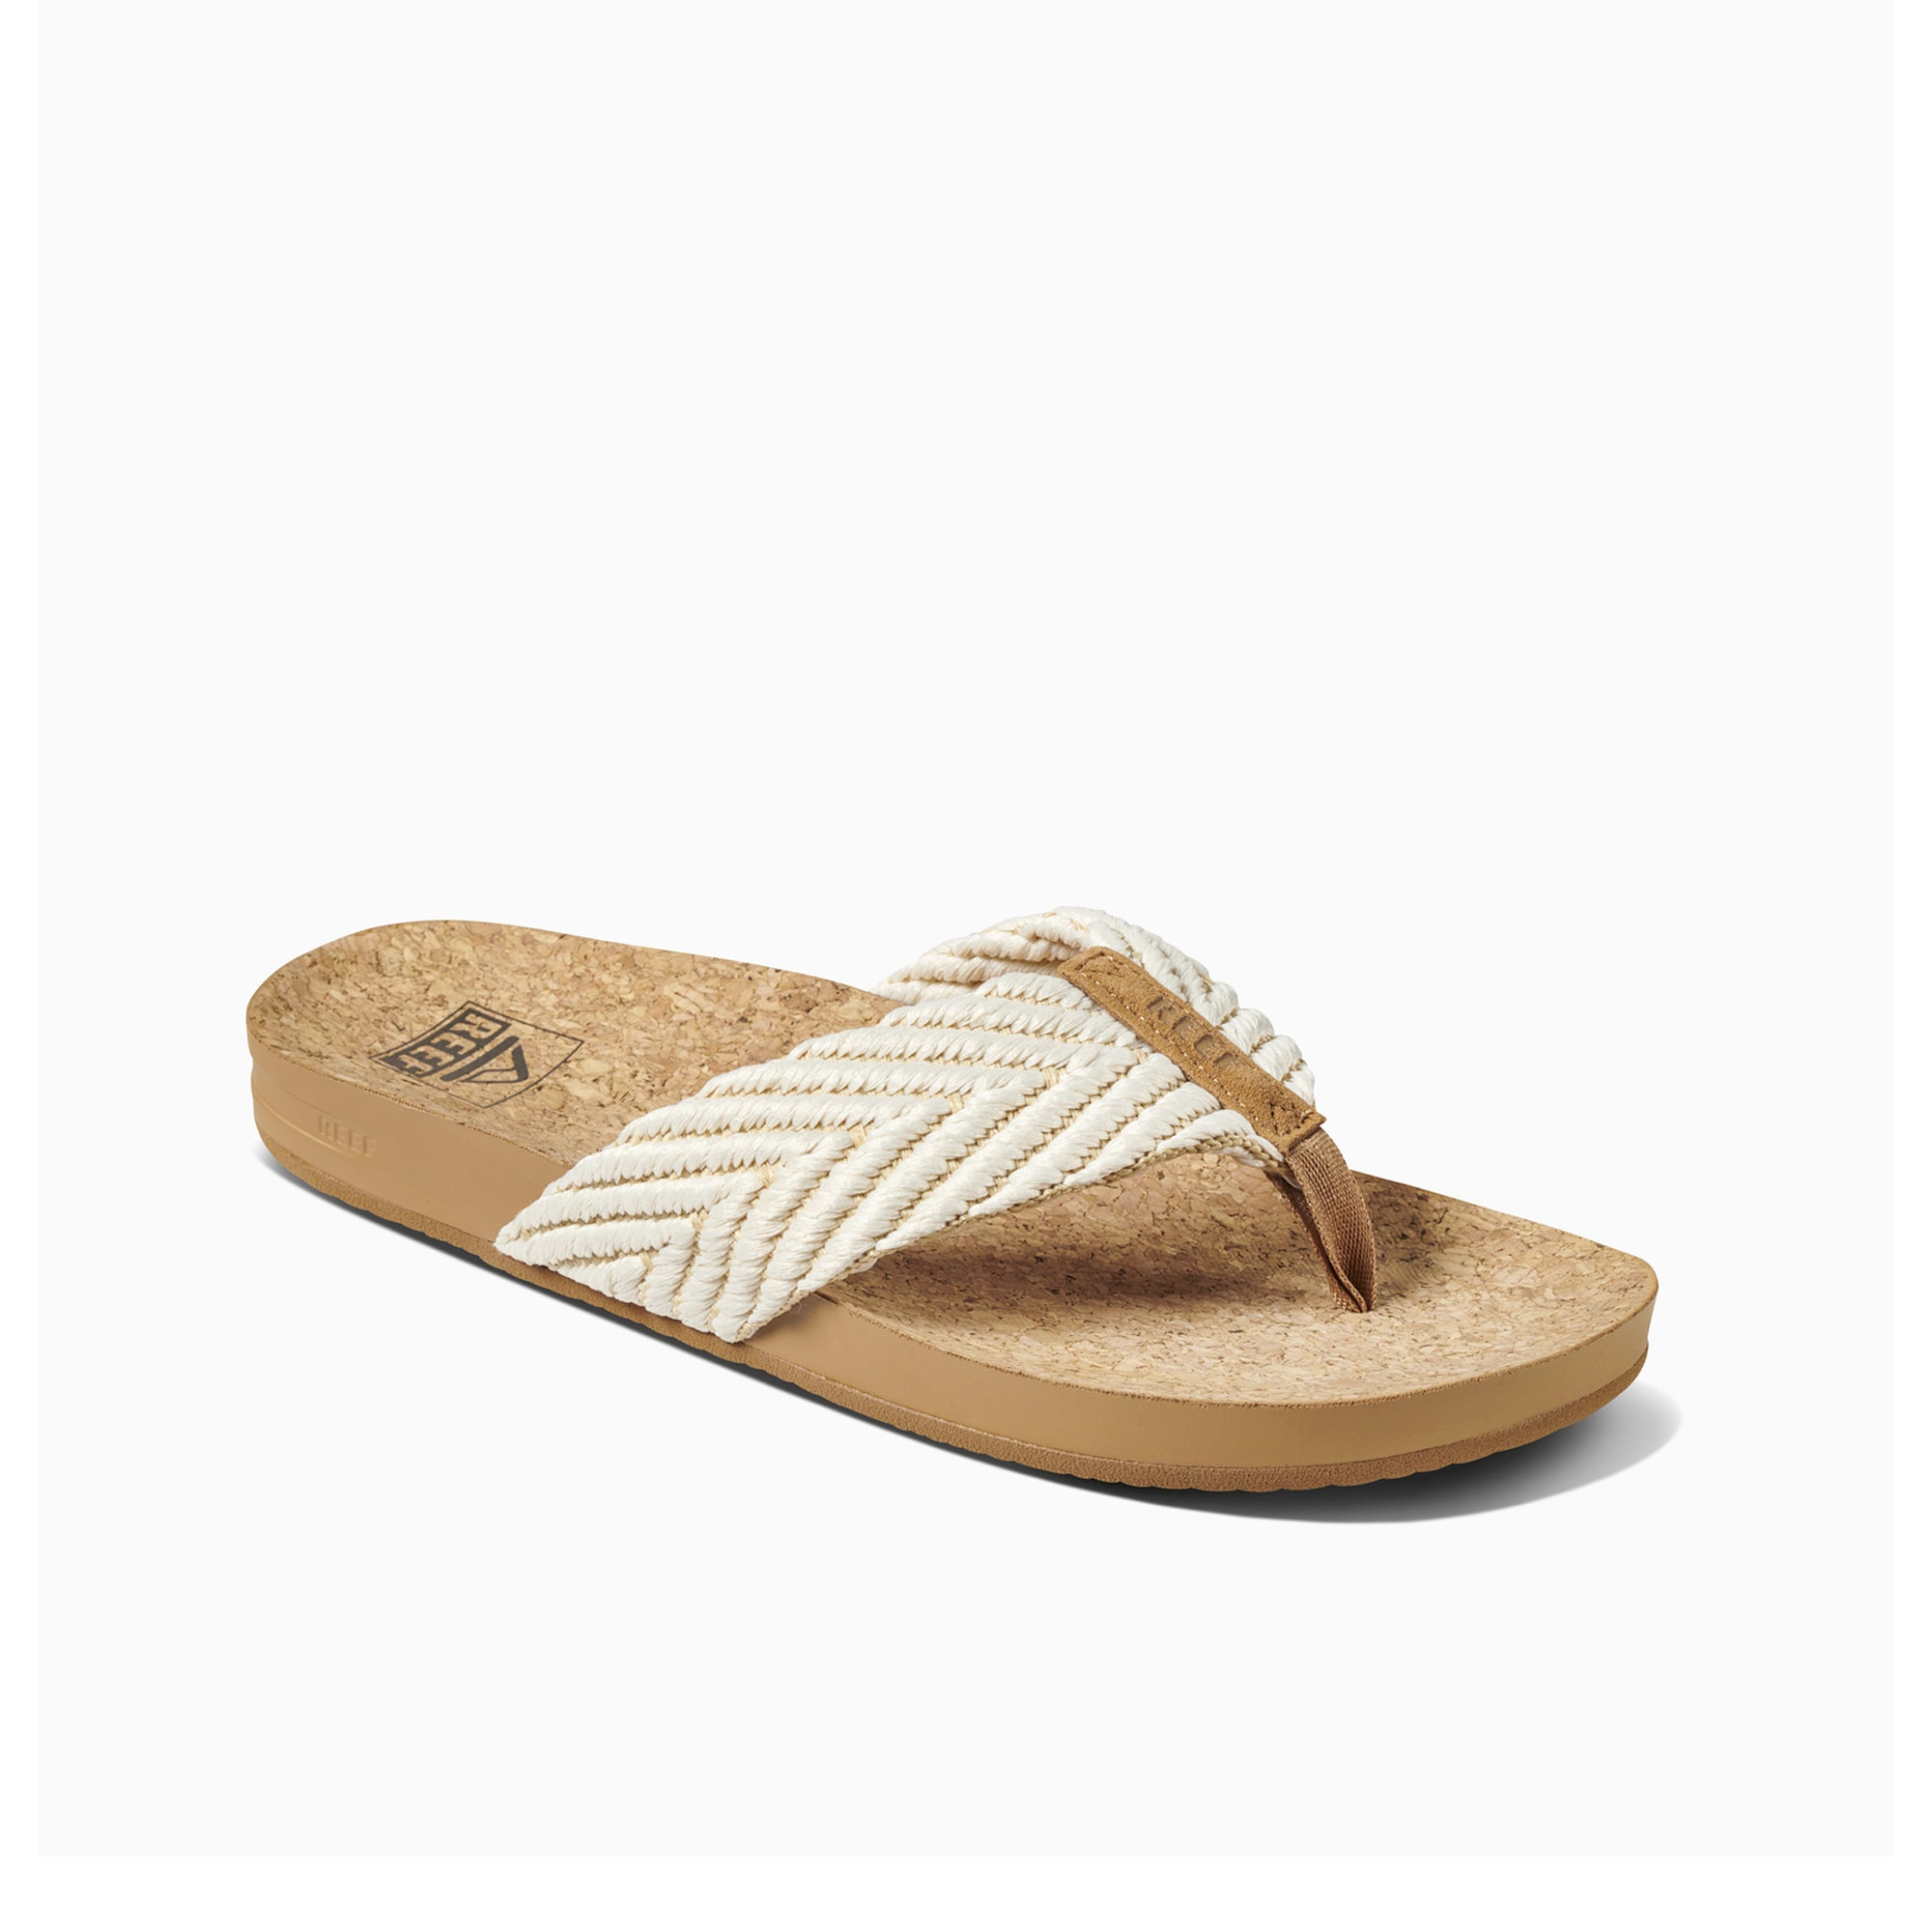 Reef Cushion Strand Women's Sandals